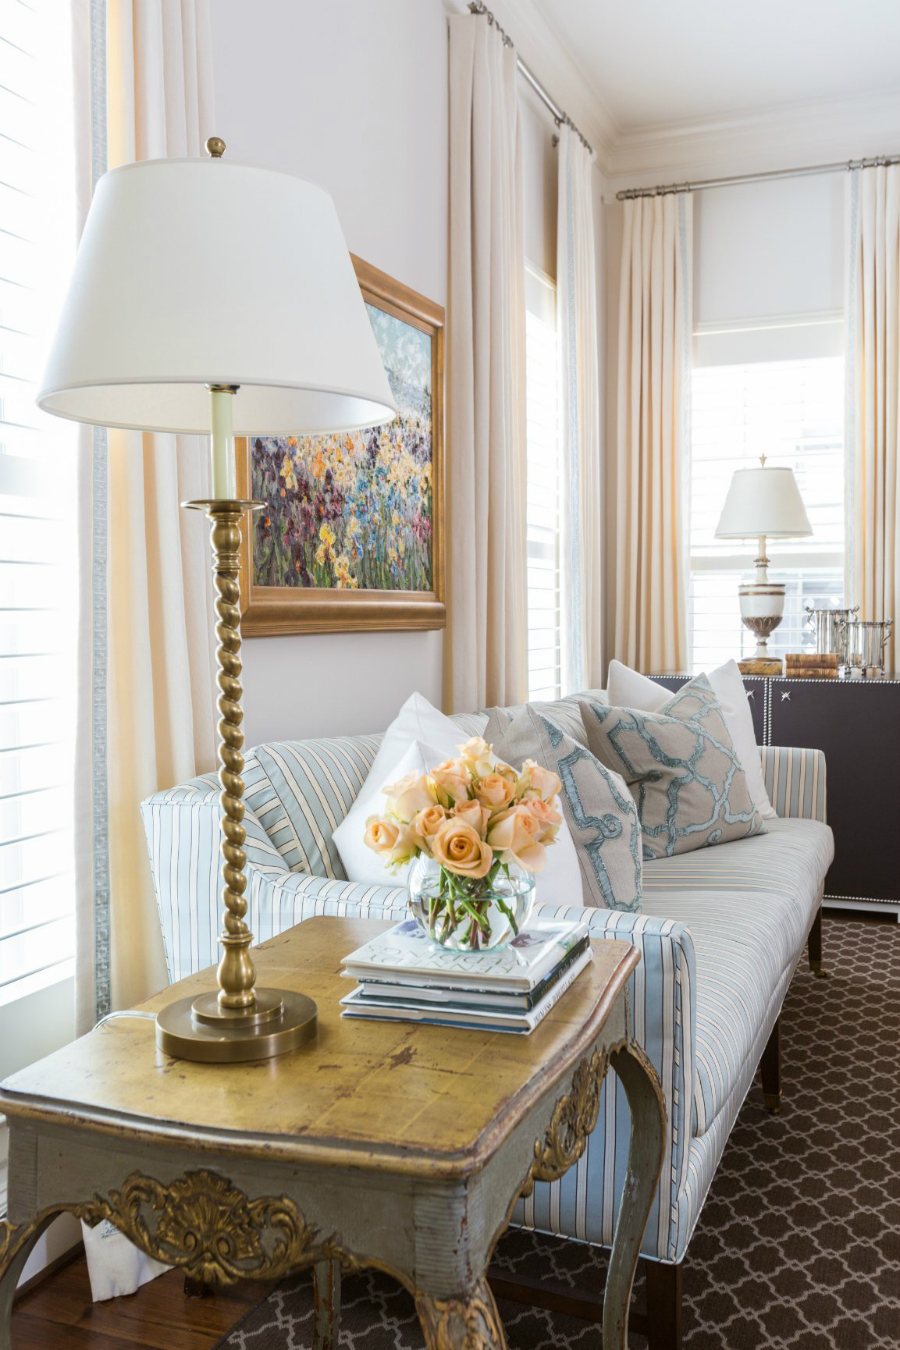 Stunning home décor? Dodson Interiors knows what it takes! stunning home décor Stunning home decor? Dodson Interiors knows what it takes! dodson1